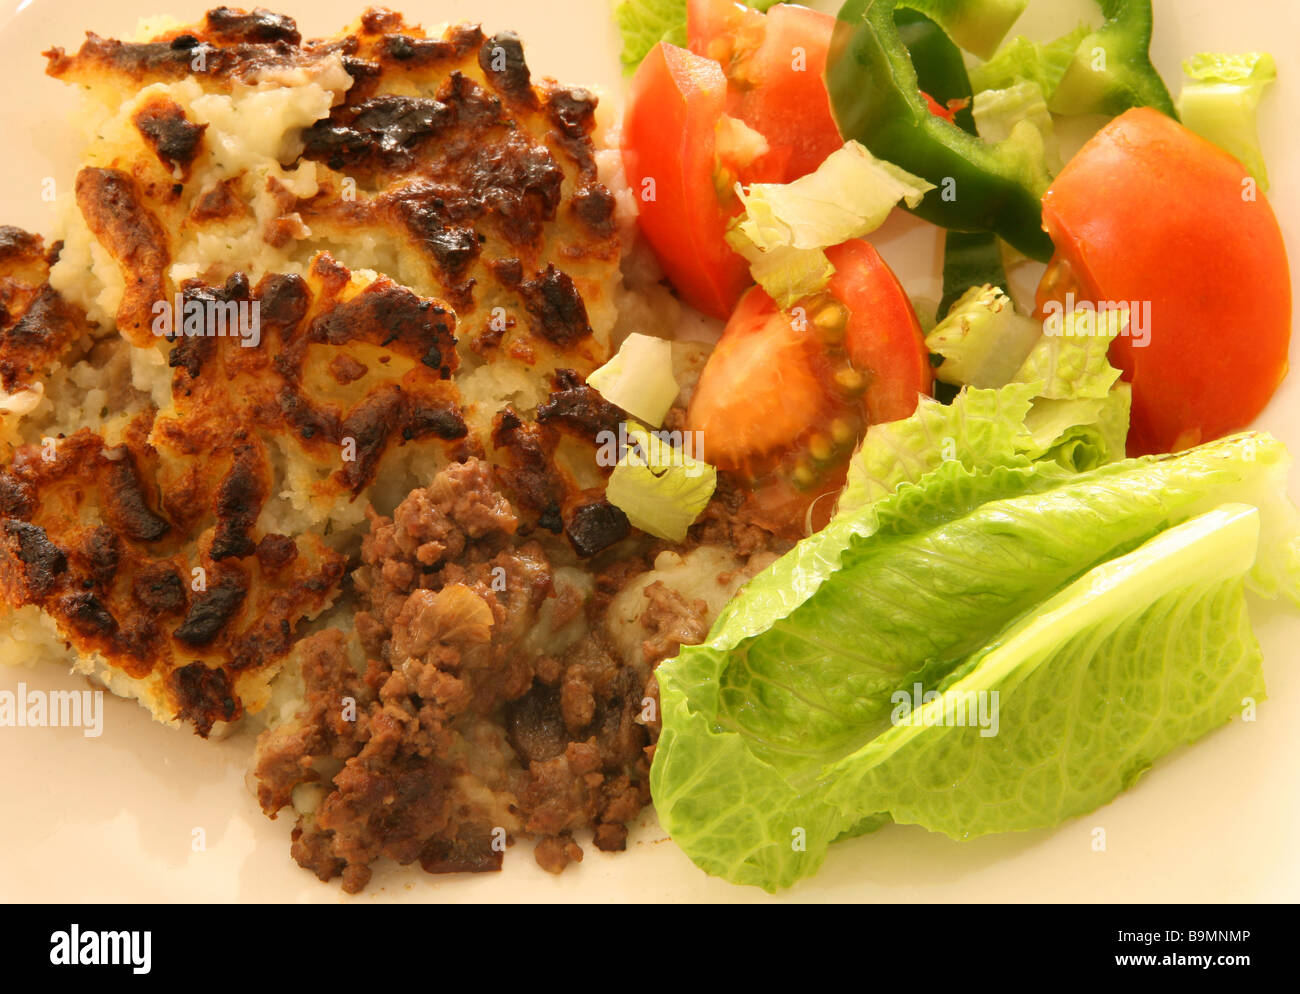 Shepherd's pie and salad,traditional British home-cooking. - Stock Image